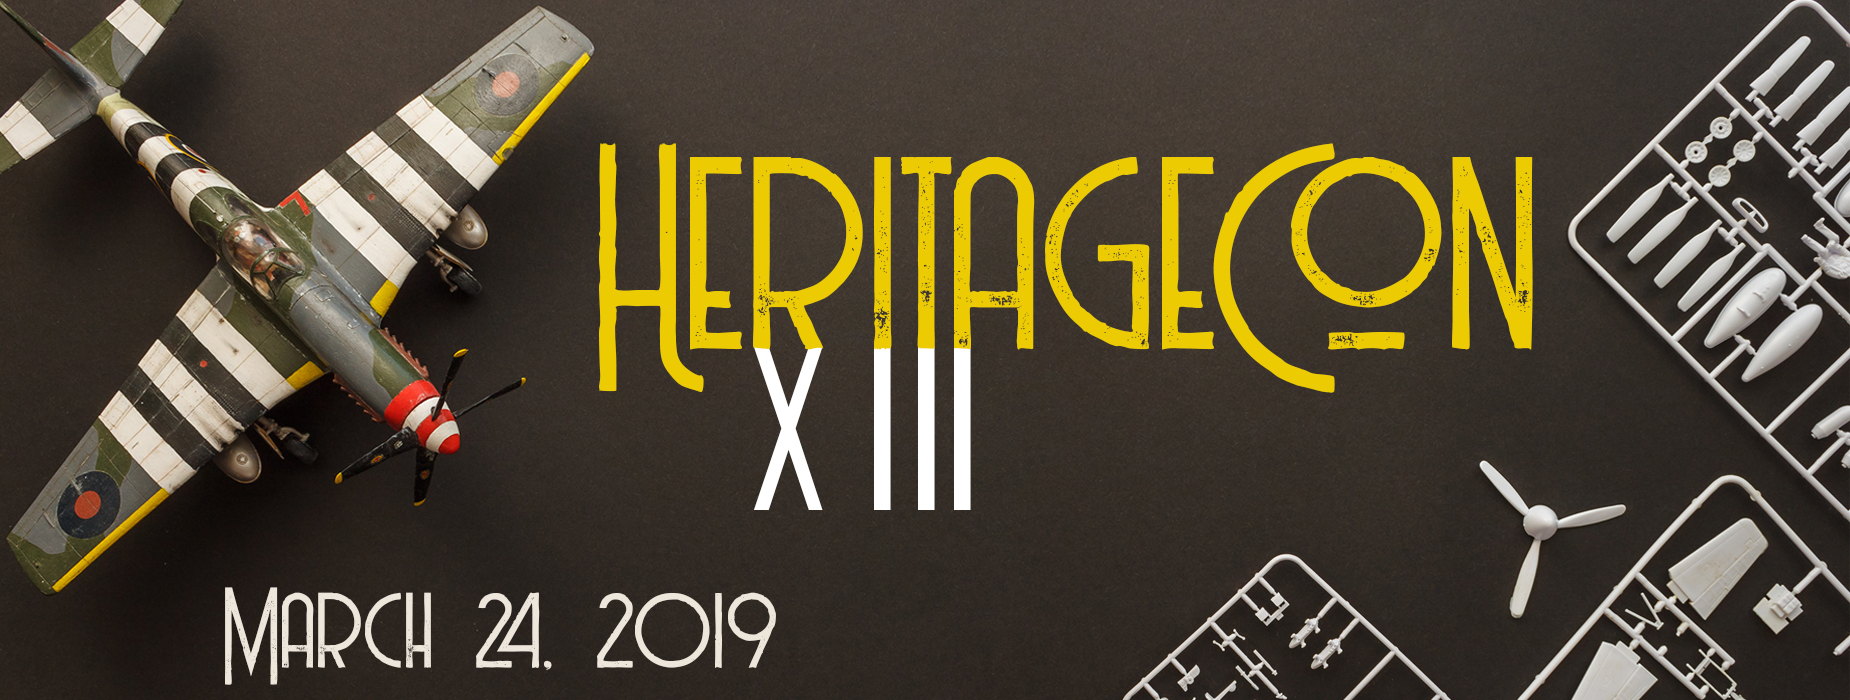 Banner Image for the HeritageCon XIII event